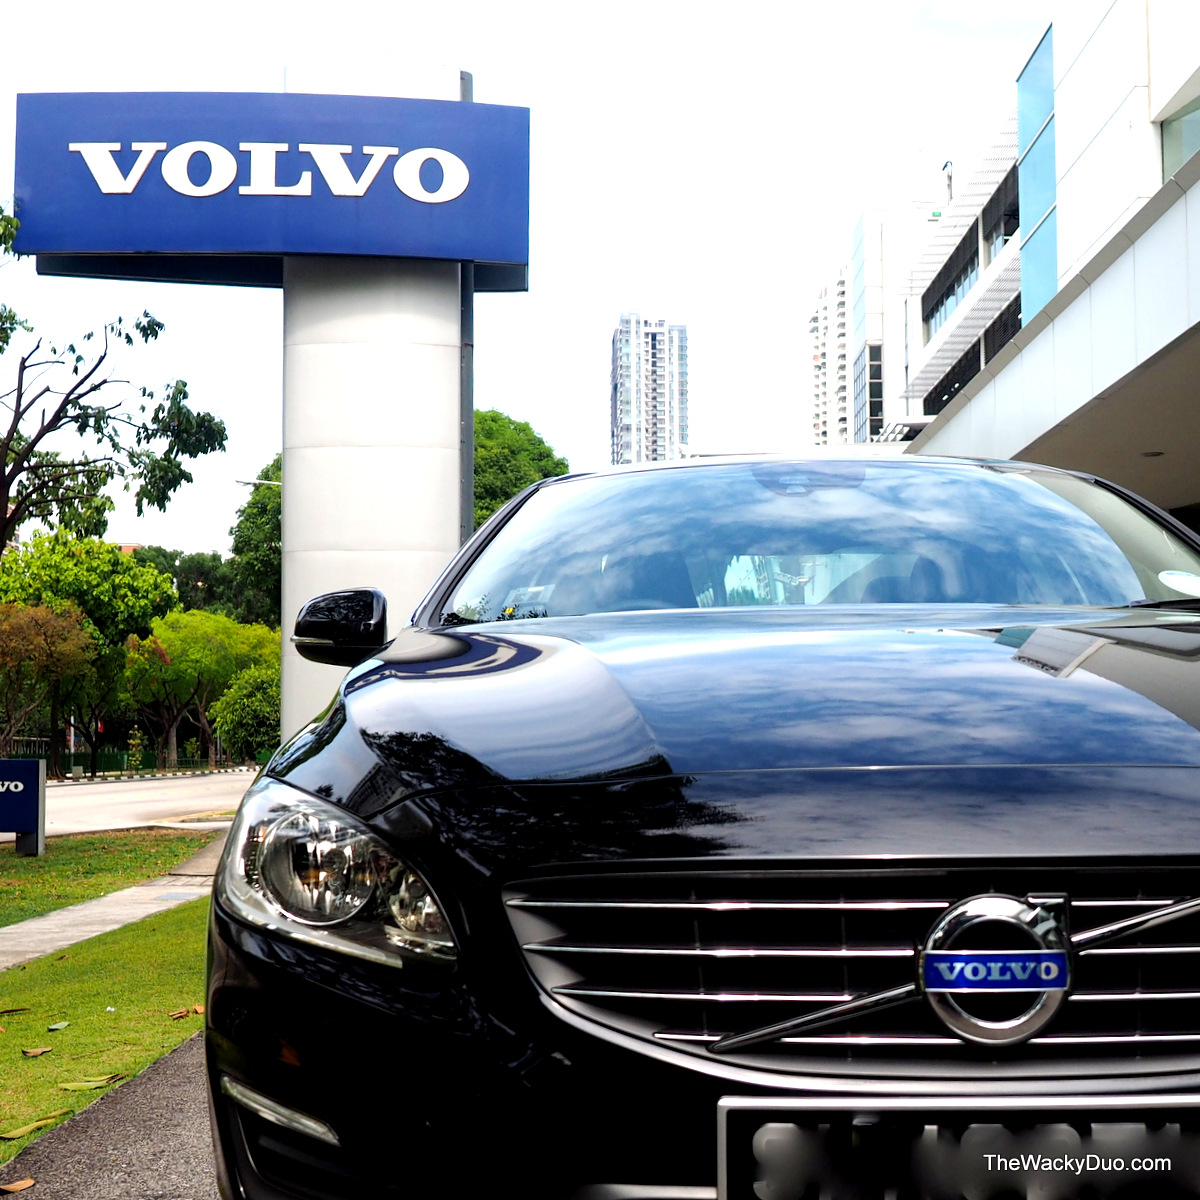 Volvo S60 D2 : Our First Diesel Ride | The Wacky Duo